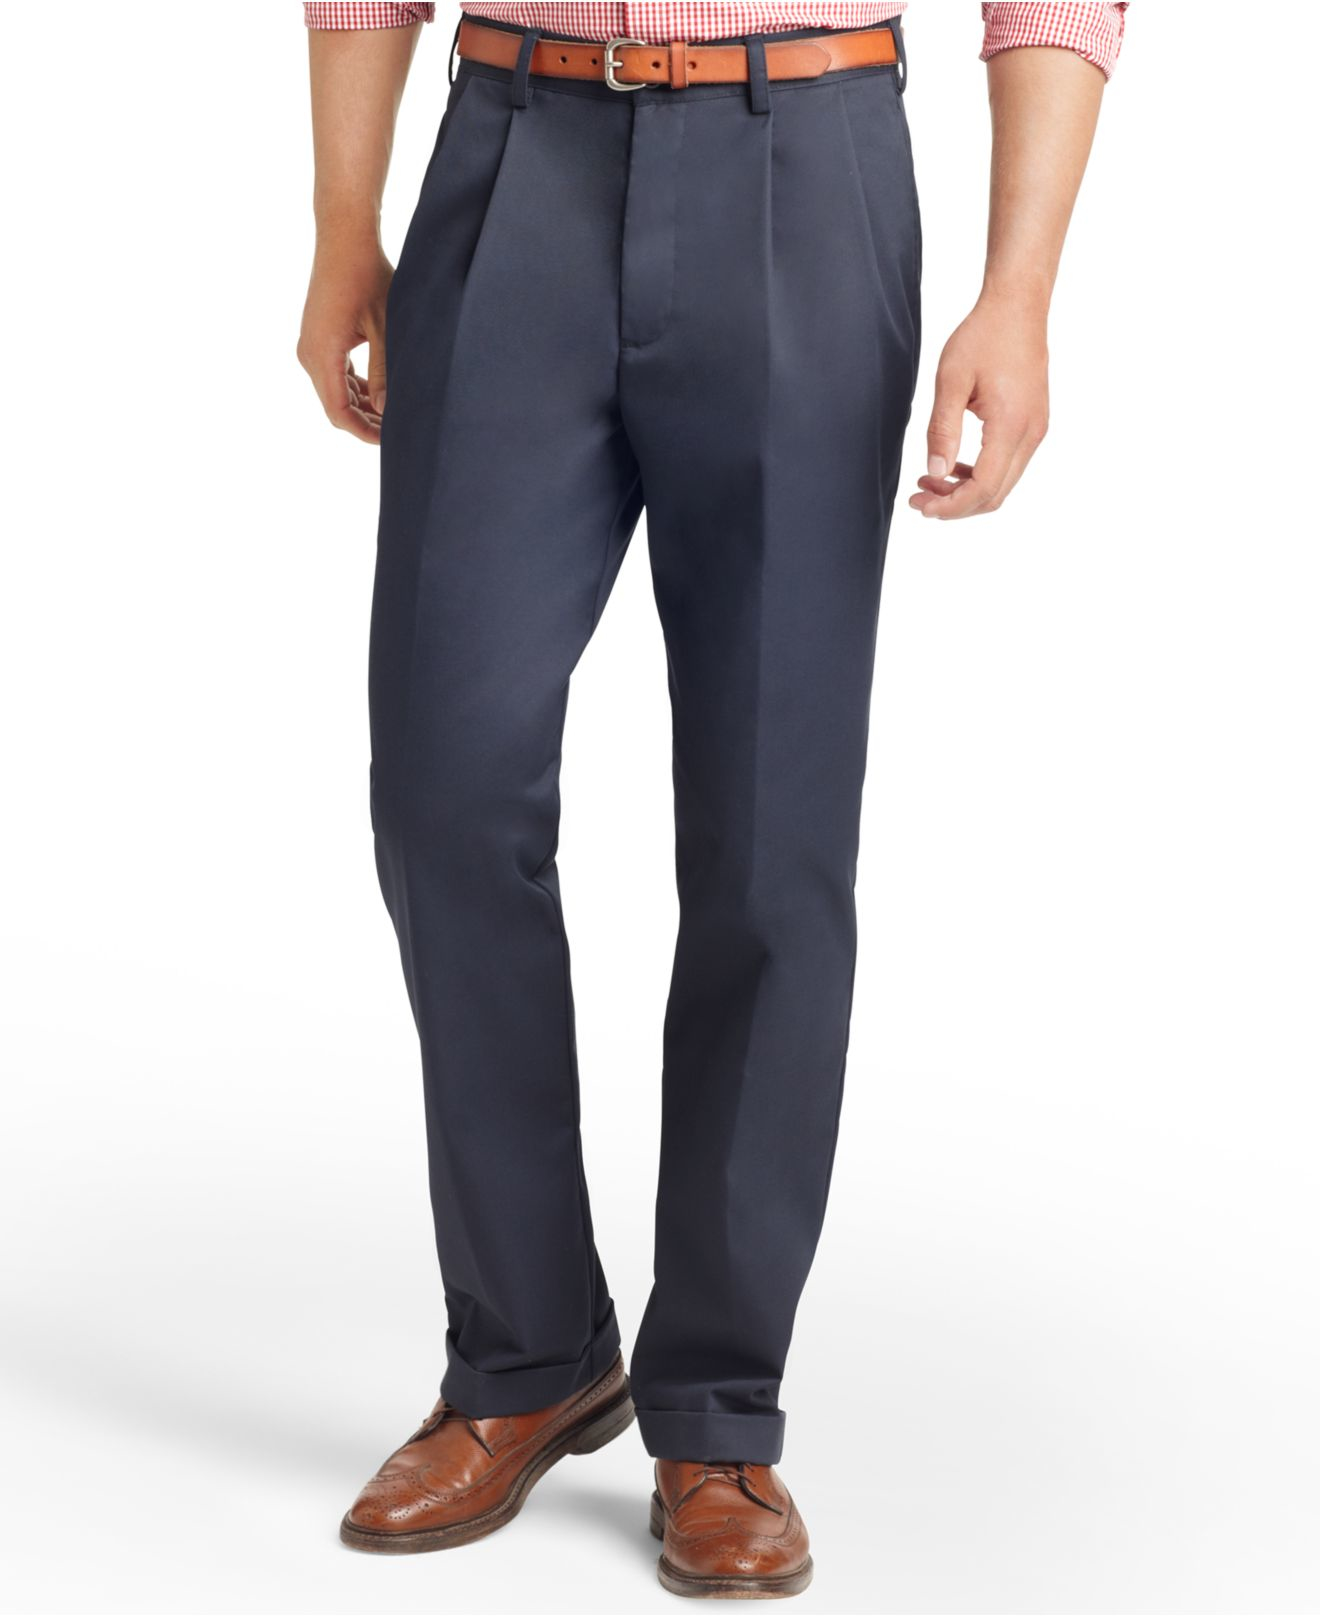 No one wants to spend hours to iron pants. Haggar's no iron, wrinkle free pants are the solution. Available in casual wrinkle free khakis and dress pant styles. Save time and shop non-iron pants now. Haggar Clothing Co.